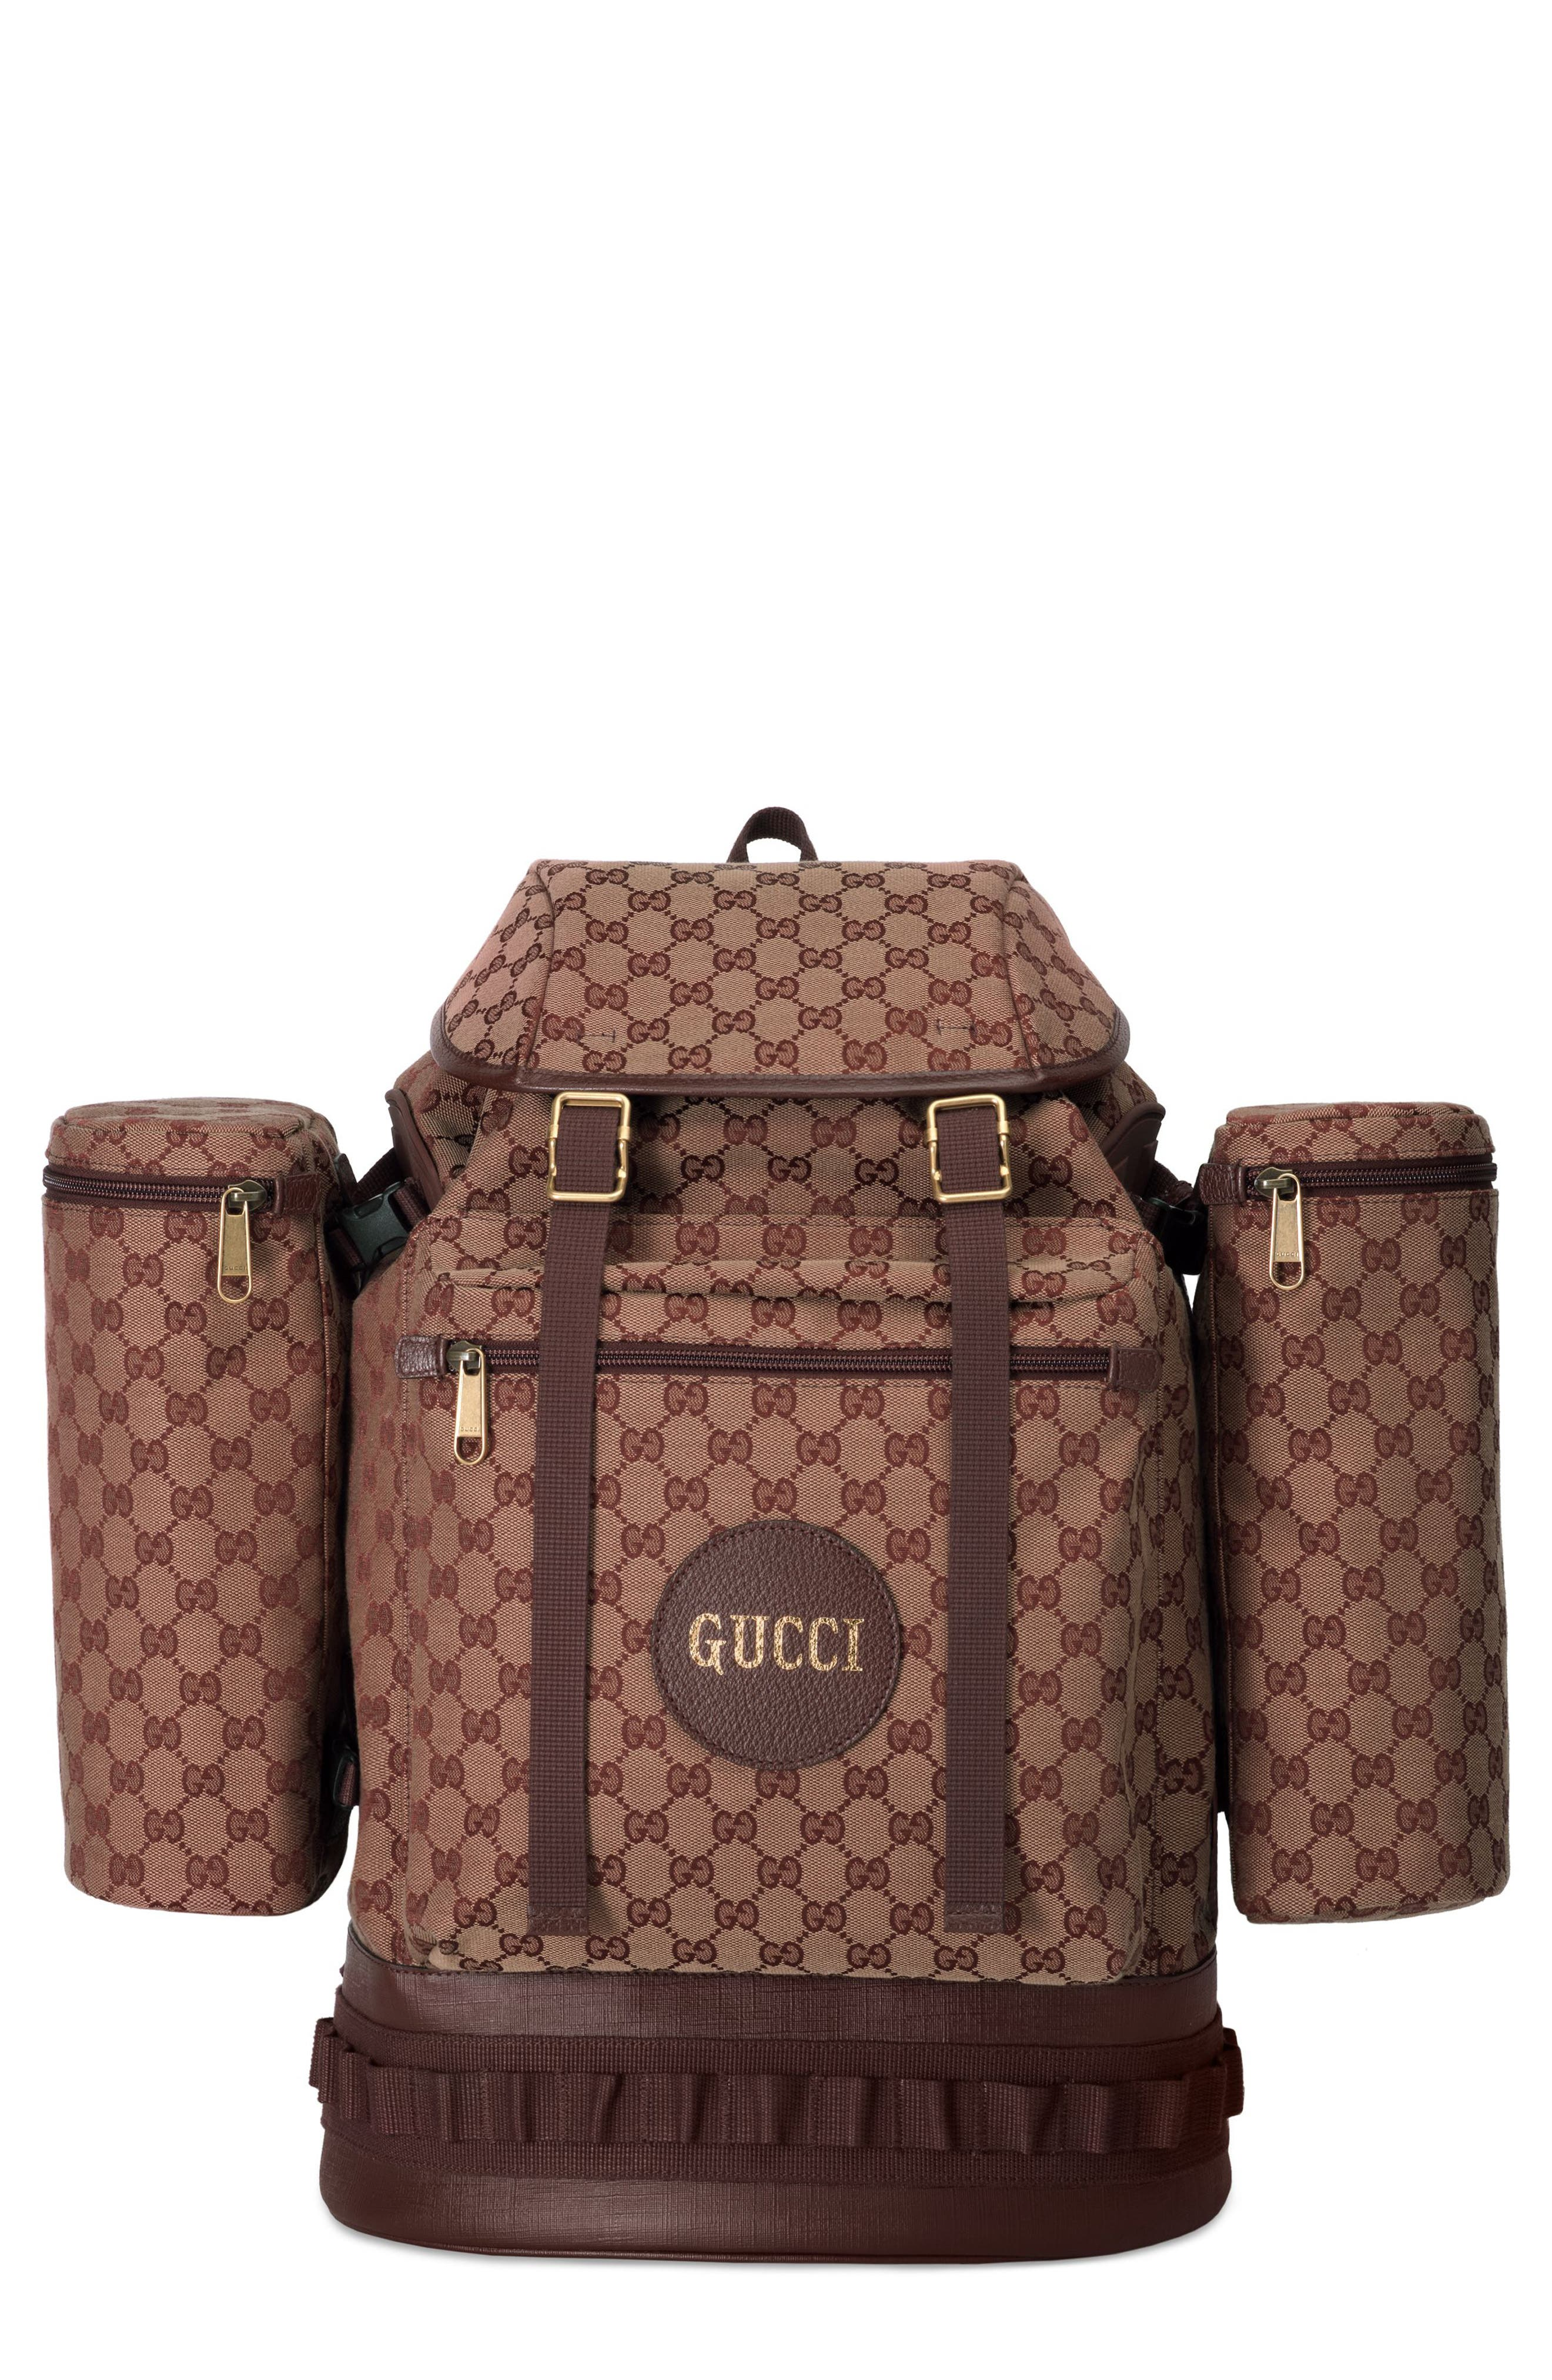 GUCCI Large GG Canvas Backpack, Main, color, BROWN RED